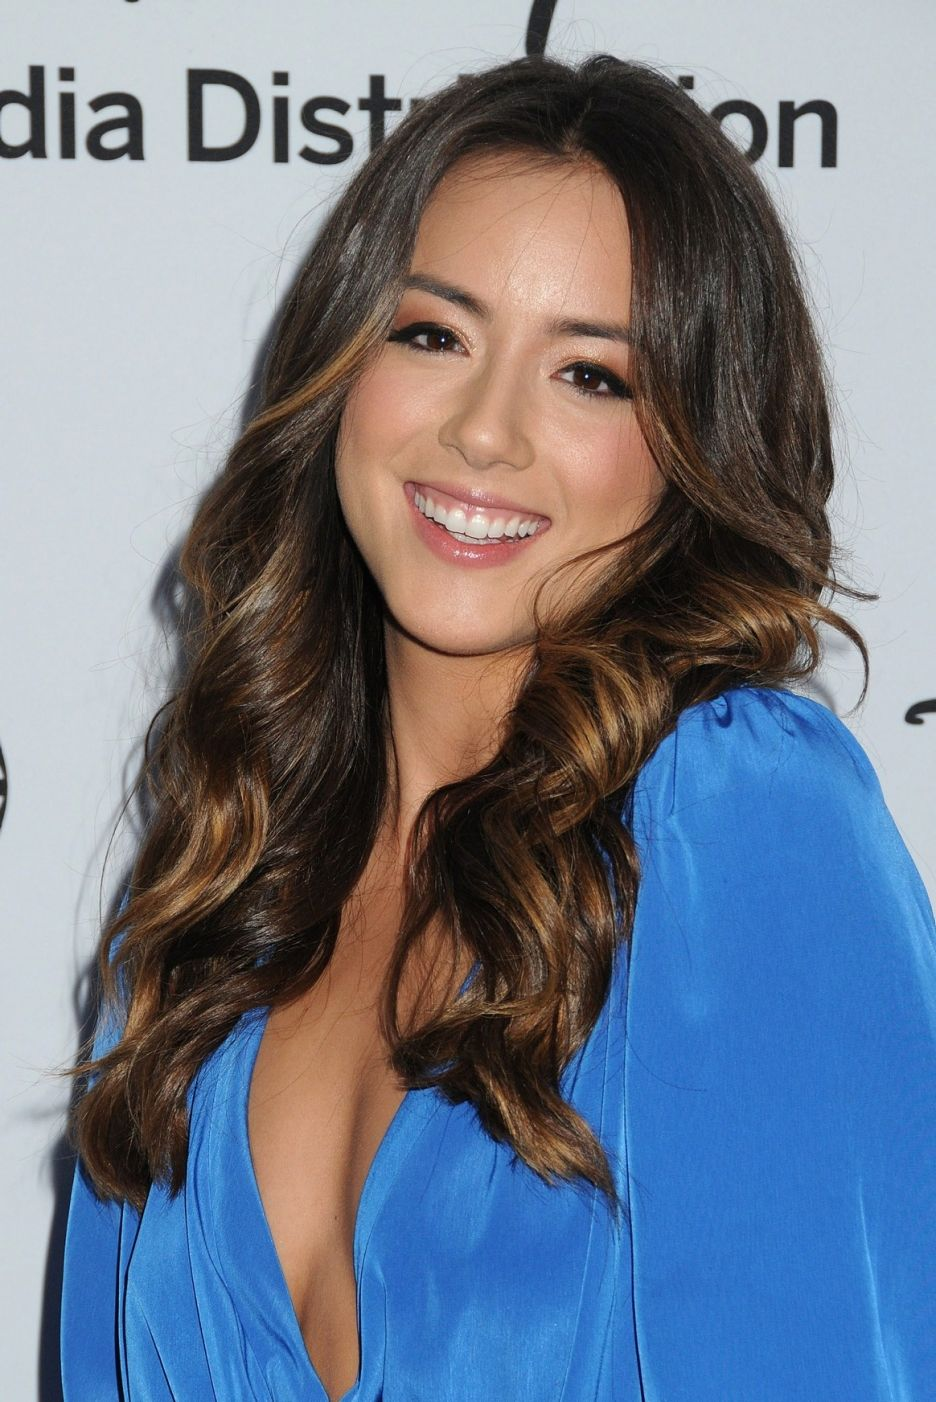 Chloe Bennet earned a  million dollar salary, leaving the net worth at 2 million in 2017